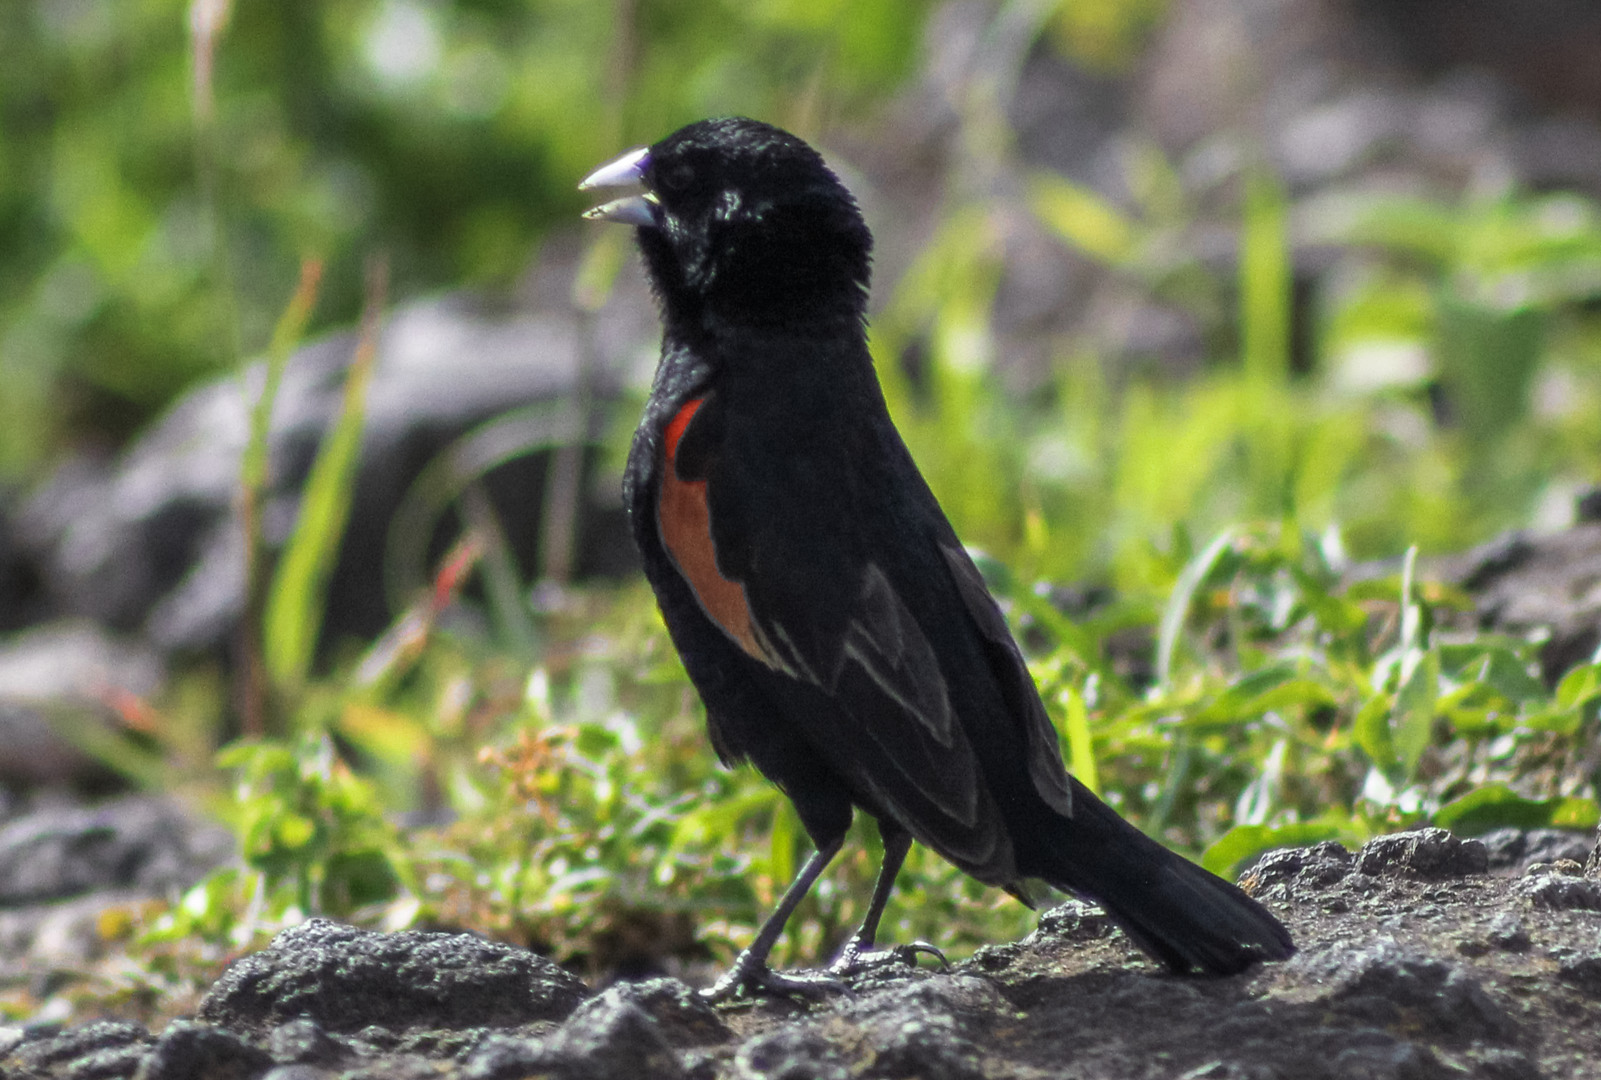 Красноплечий ткачик Fan-tailed Widowbird (Euplectes axillaris), Нгоронгоро